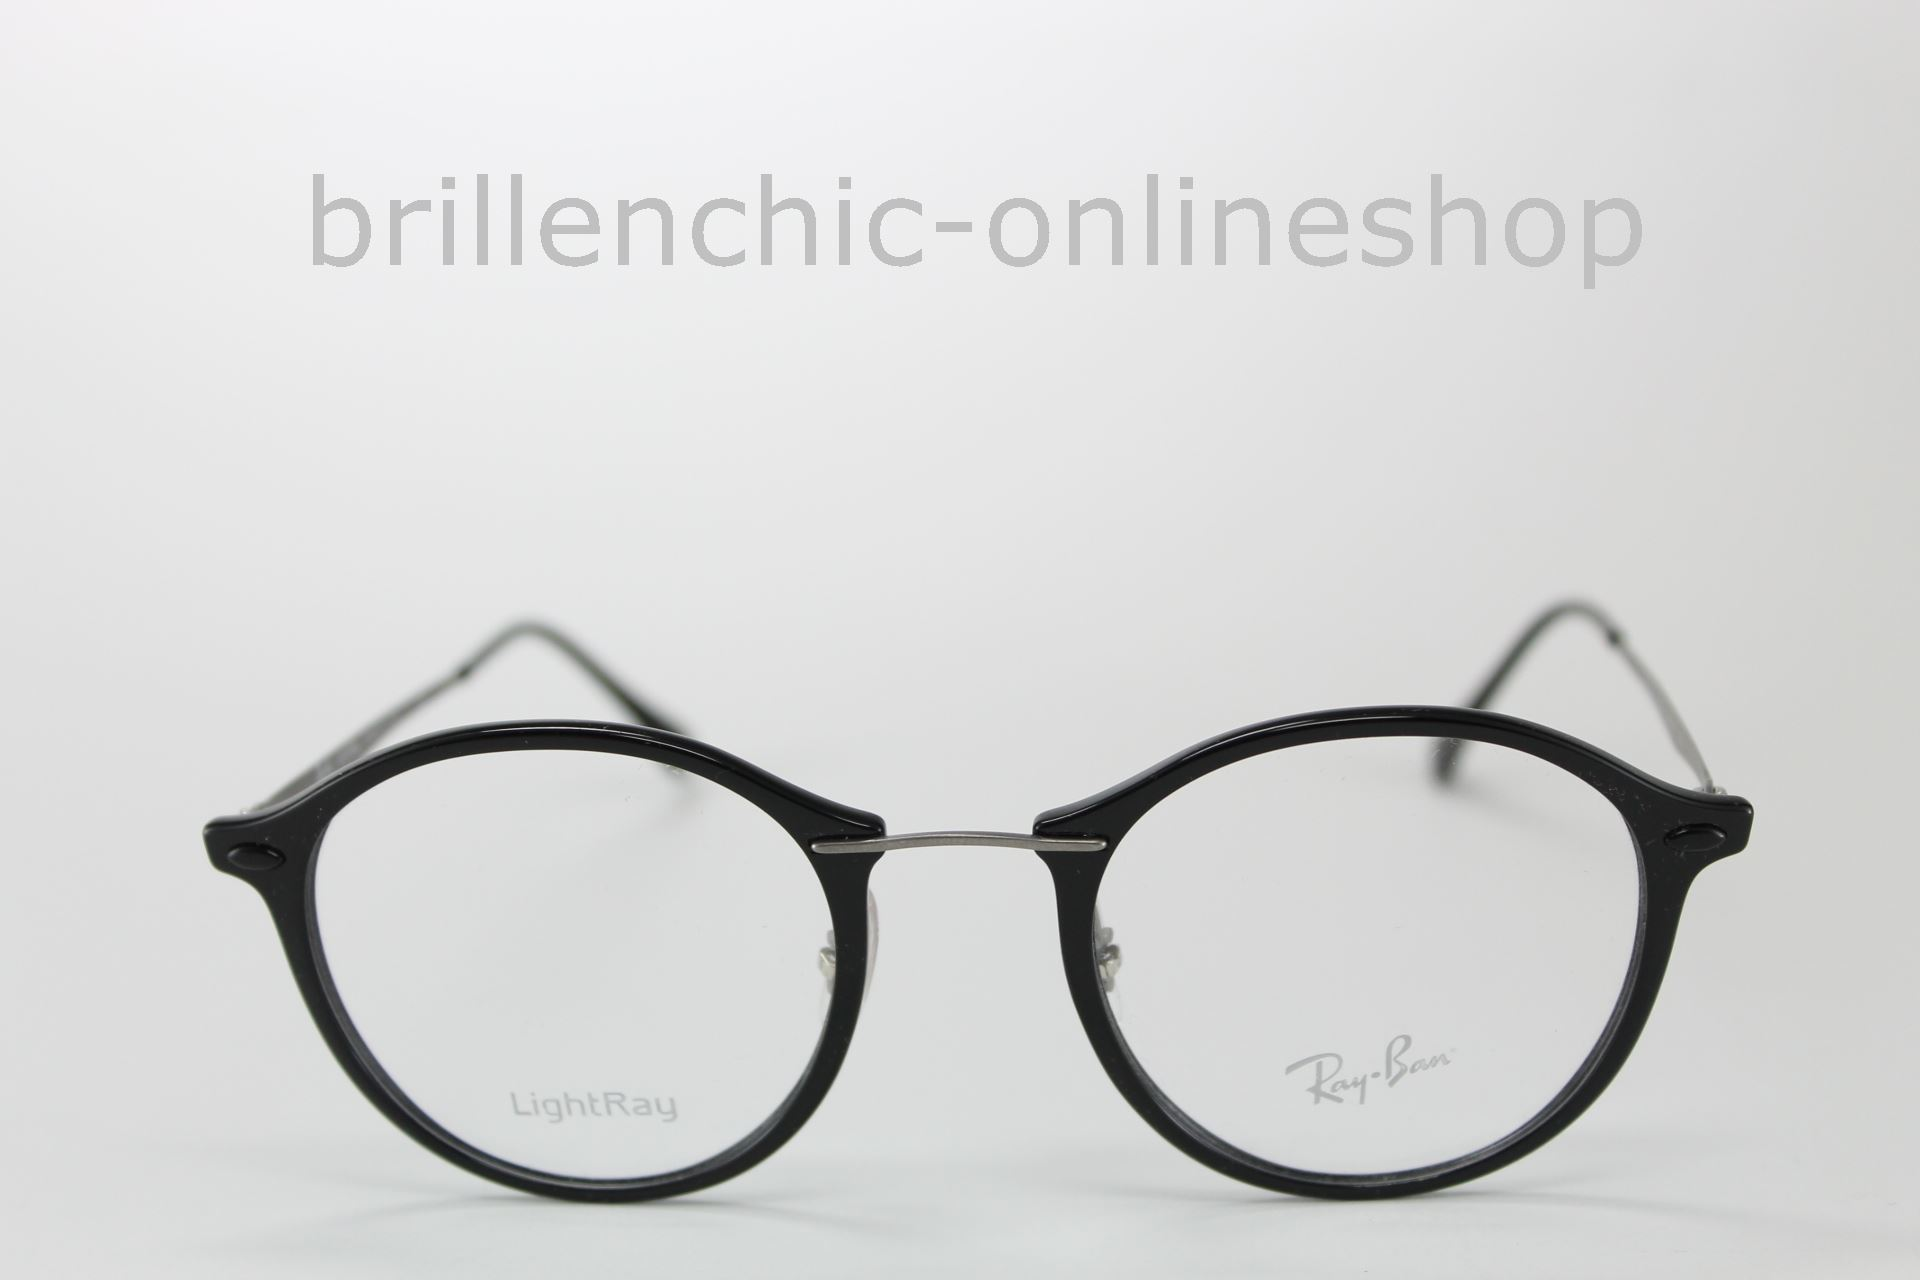 0892bece7c Brillenchic-onlineshop in Berlin - Ray Ban RB 7073 2000 LIGHT RAY